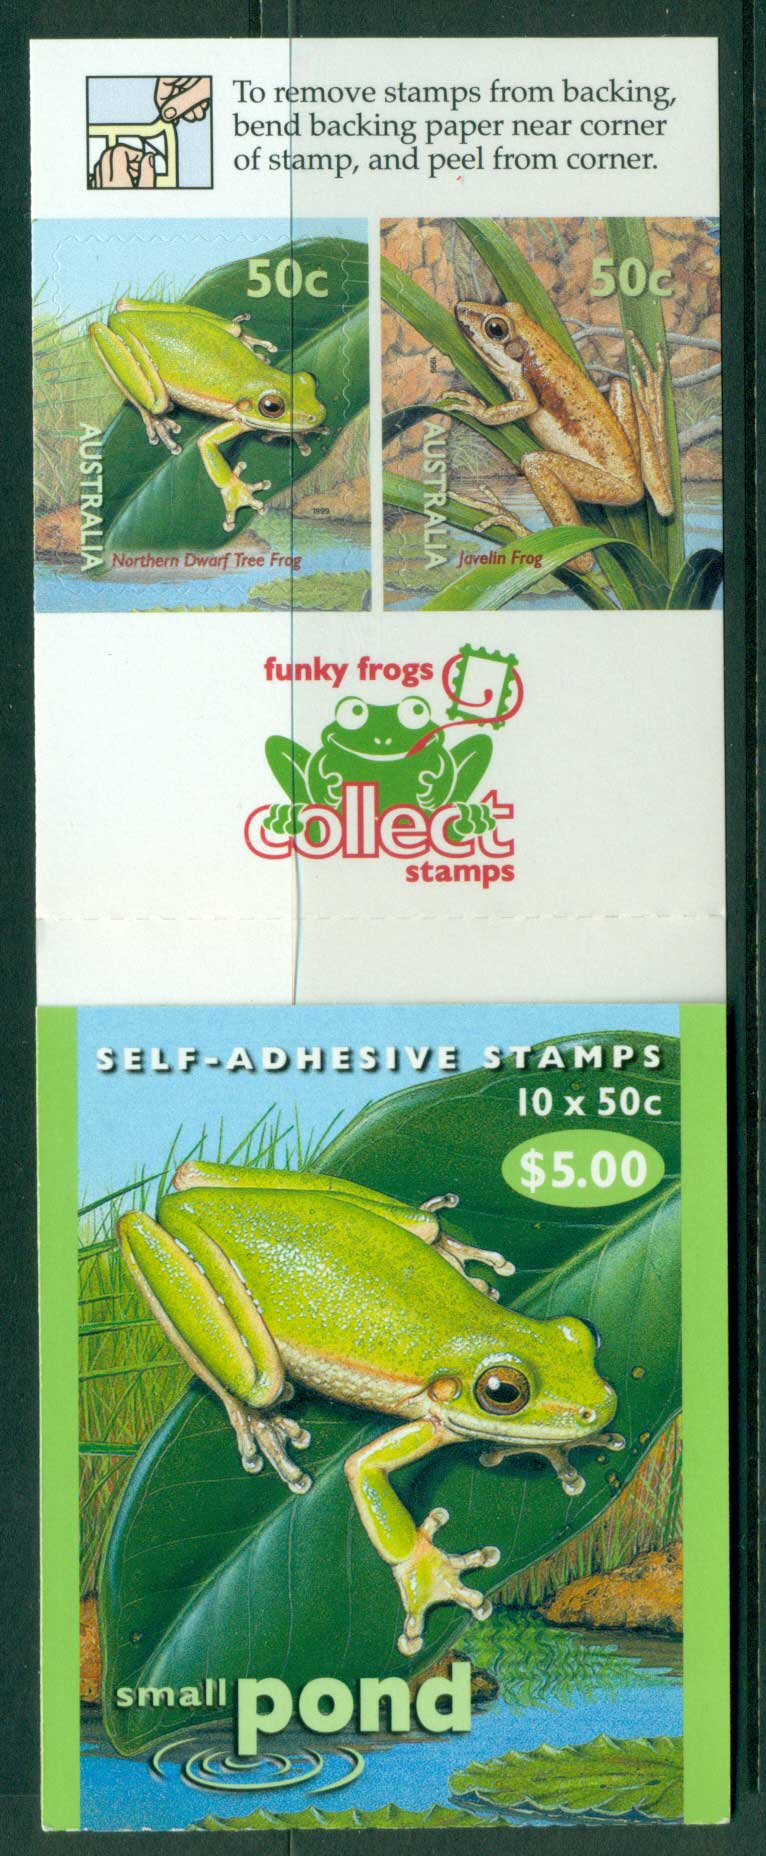 Australia 1999 $4.50 Small Pond B224 Philatelic Booklet Lot26057